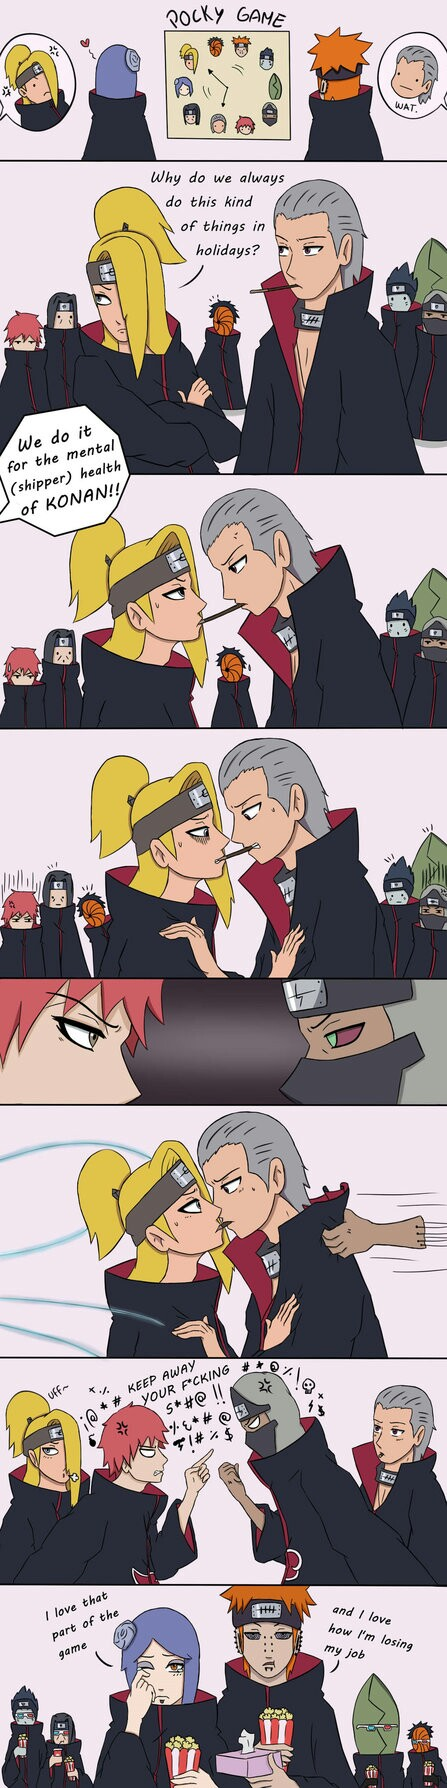 """OMG THIS IS SO FUNNY LMAO!!!  """"and I love how I lose my job"""" LOL PAIN!!! AND KONAN IS MY FAVOURITE"""